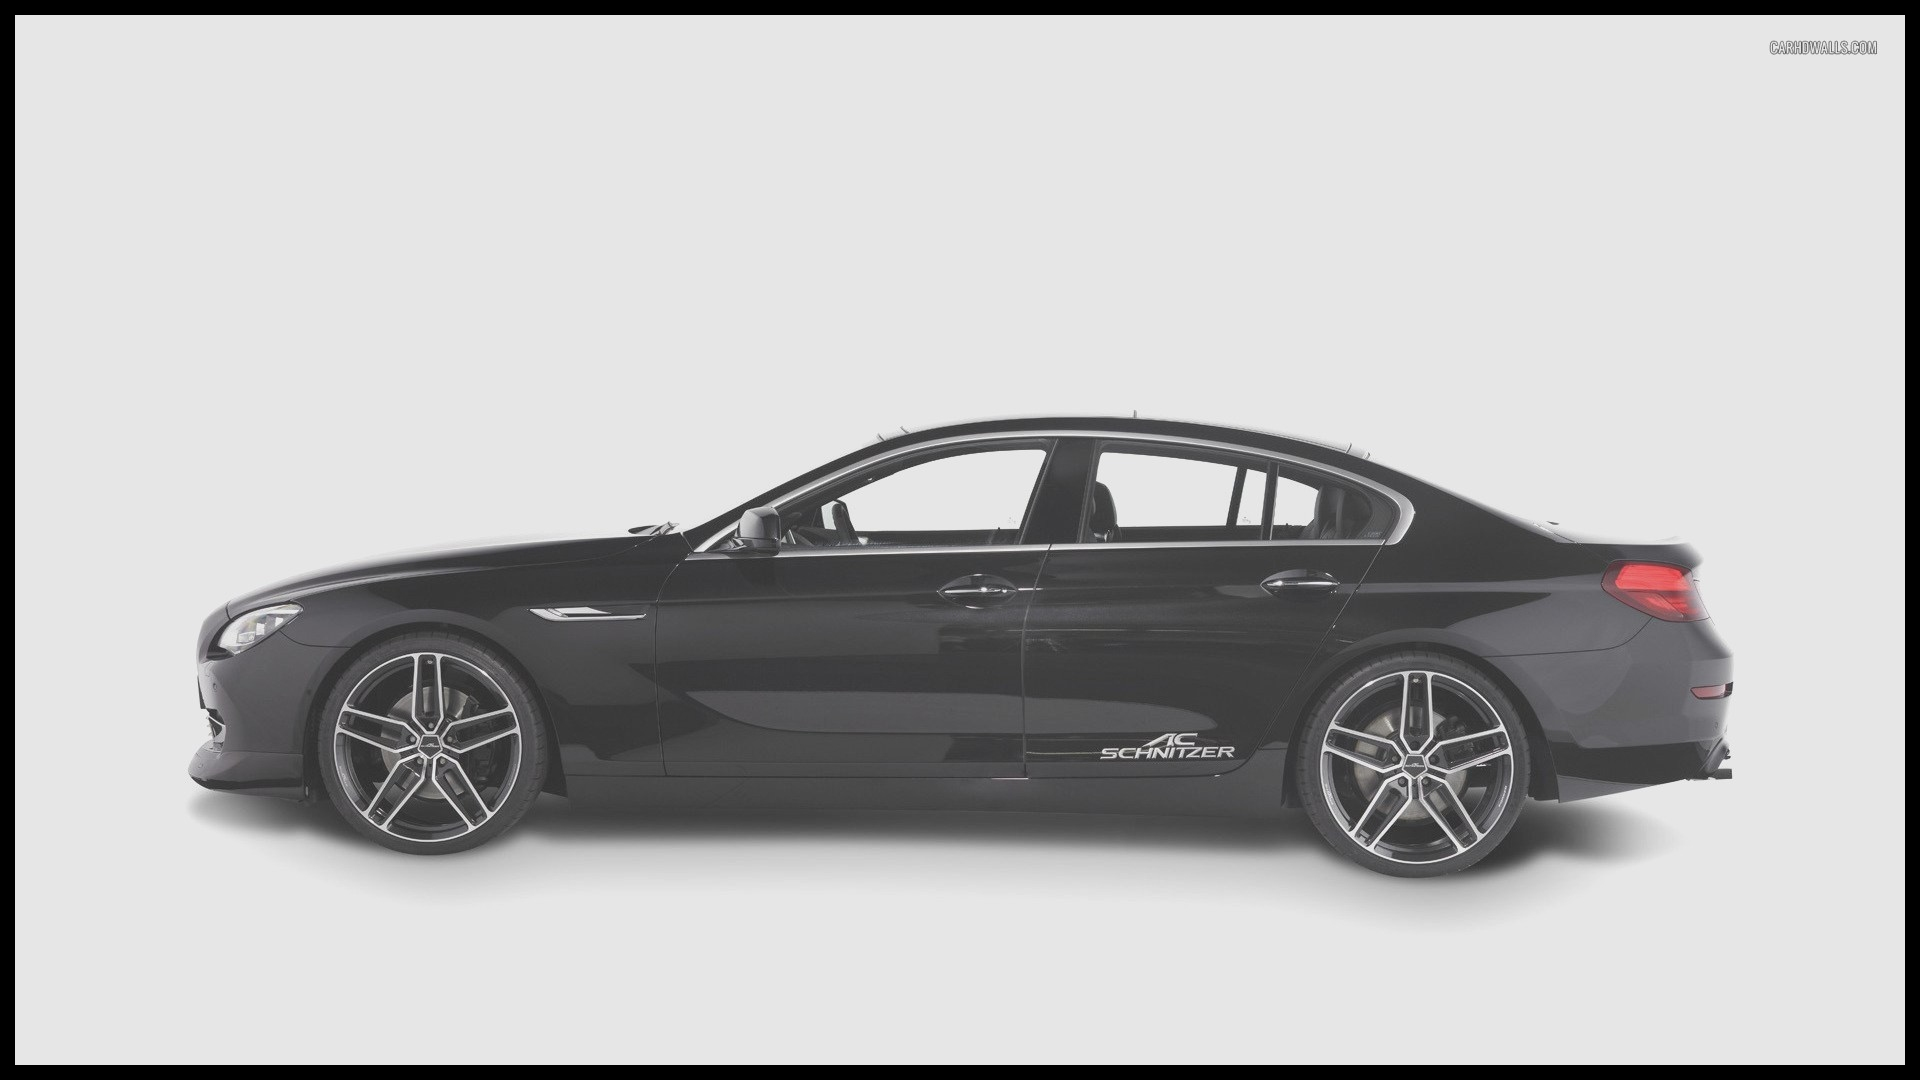 Cool Review About Bmw 328i Coupe With Exciting High Definition Bmw 645ci Wallpaper